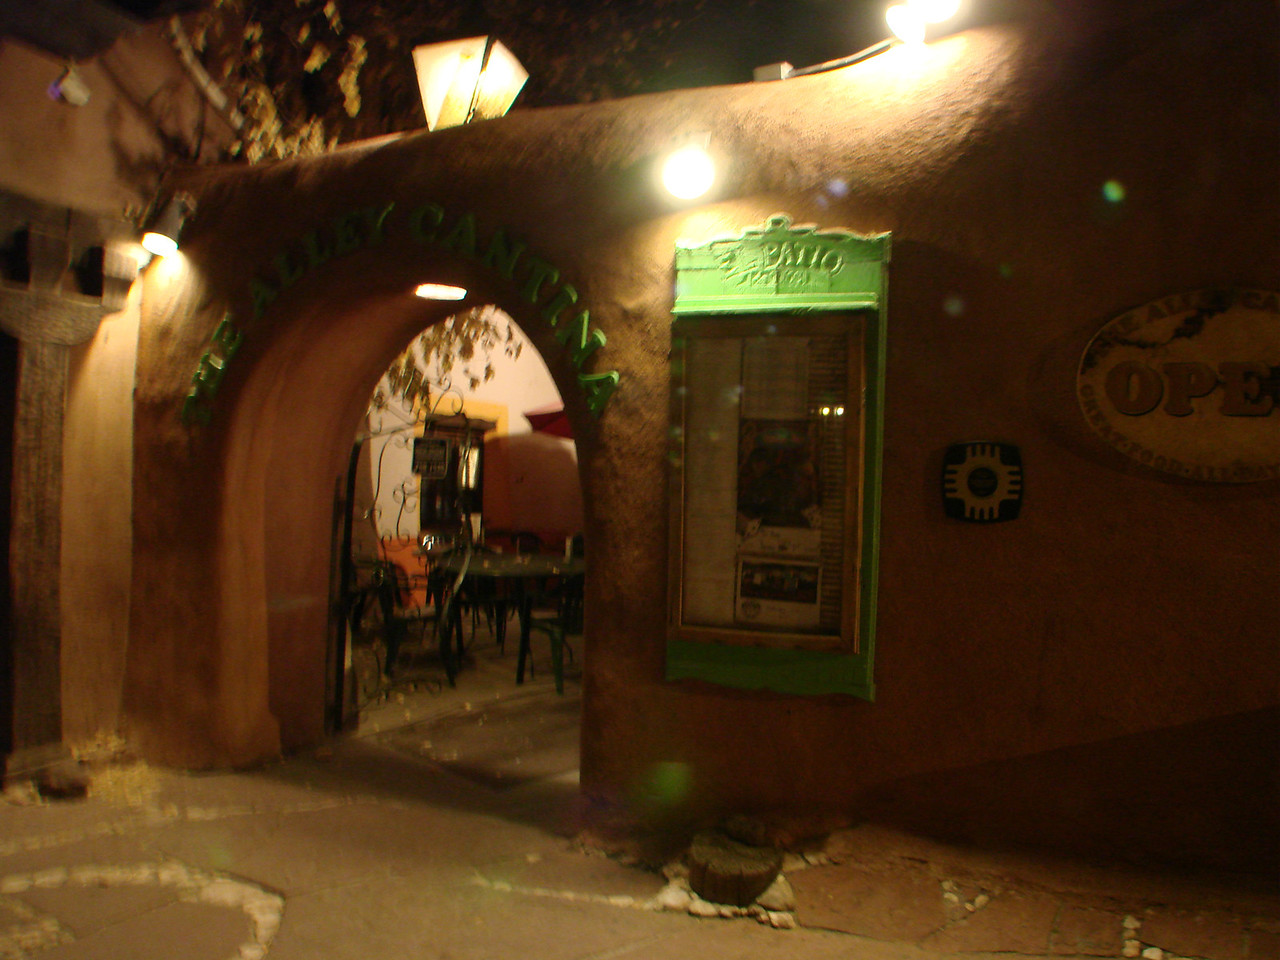 The Alley Cantina, Taos Plaza, Taos, New Mexico  http://www.alleycantina.com/